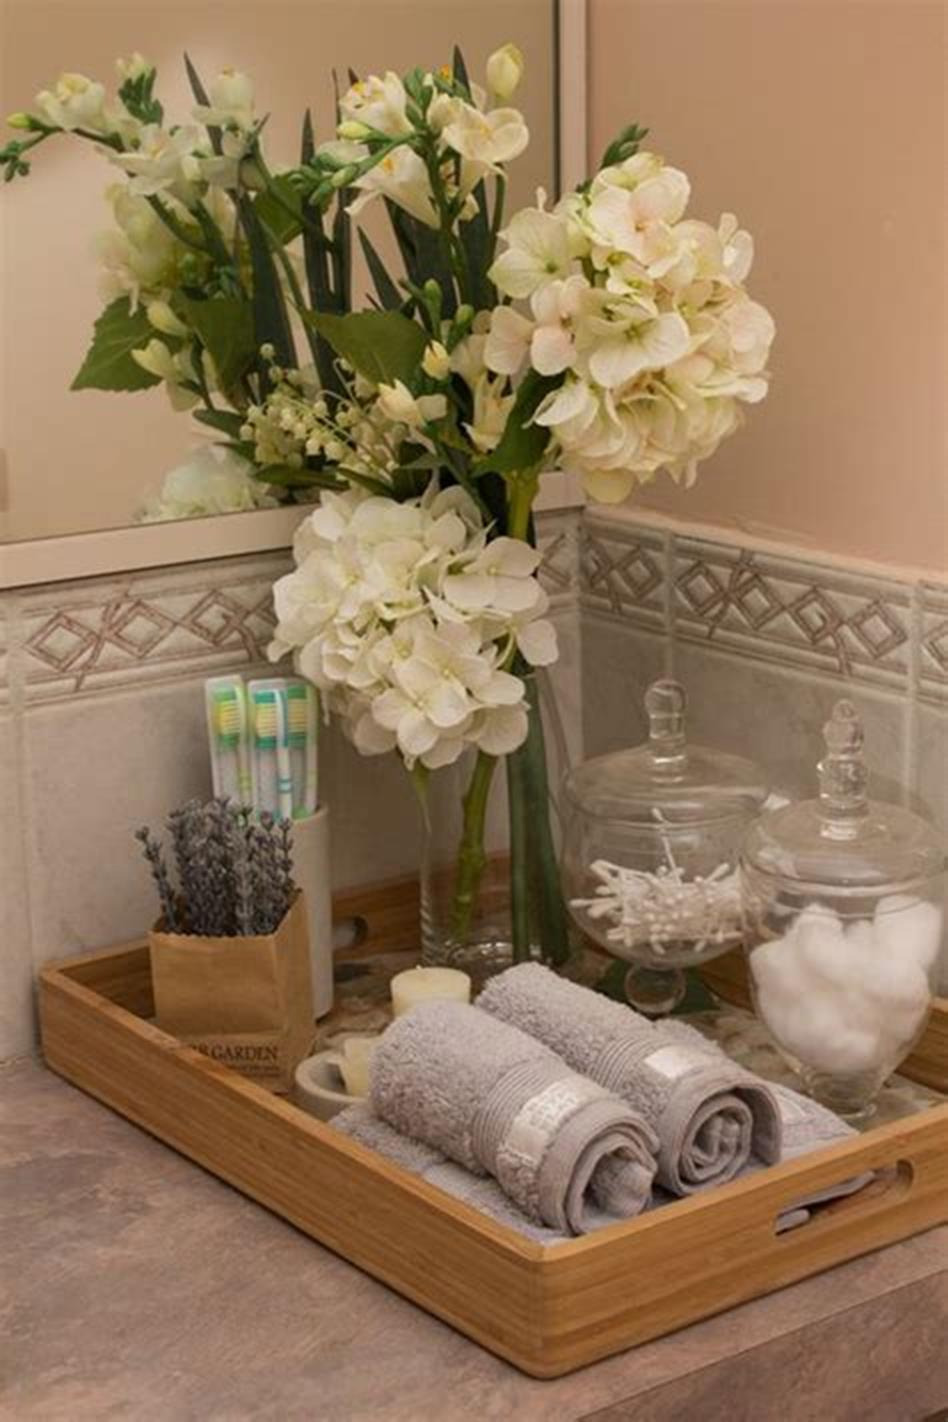 40 Beautiful Bathroom Vanity Tray Decor Ideas 3